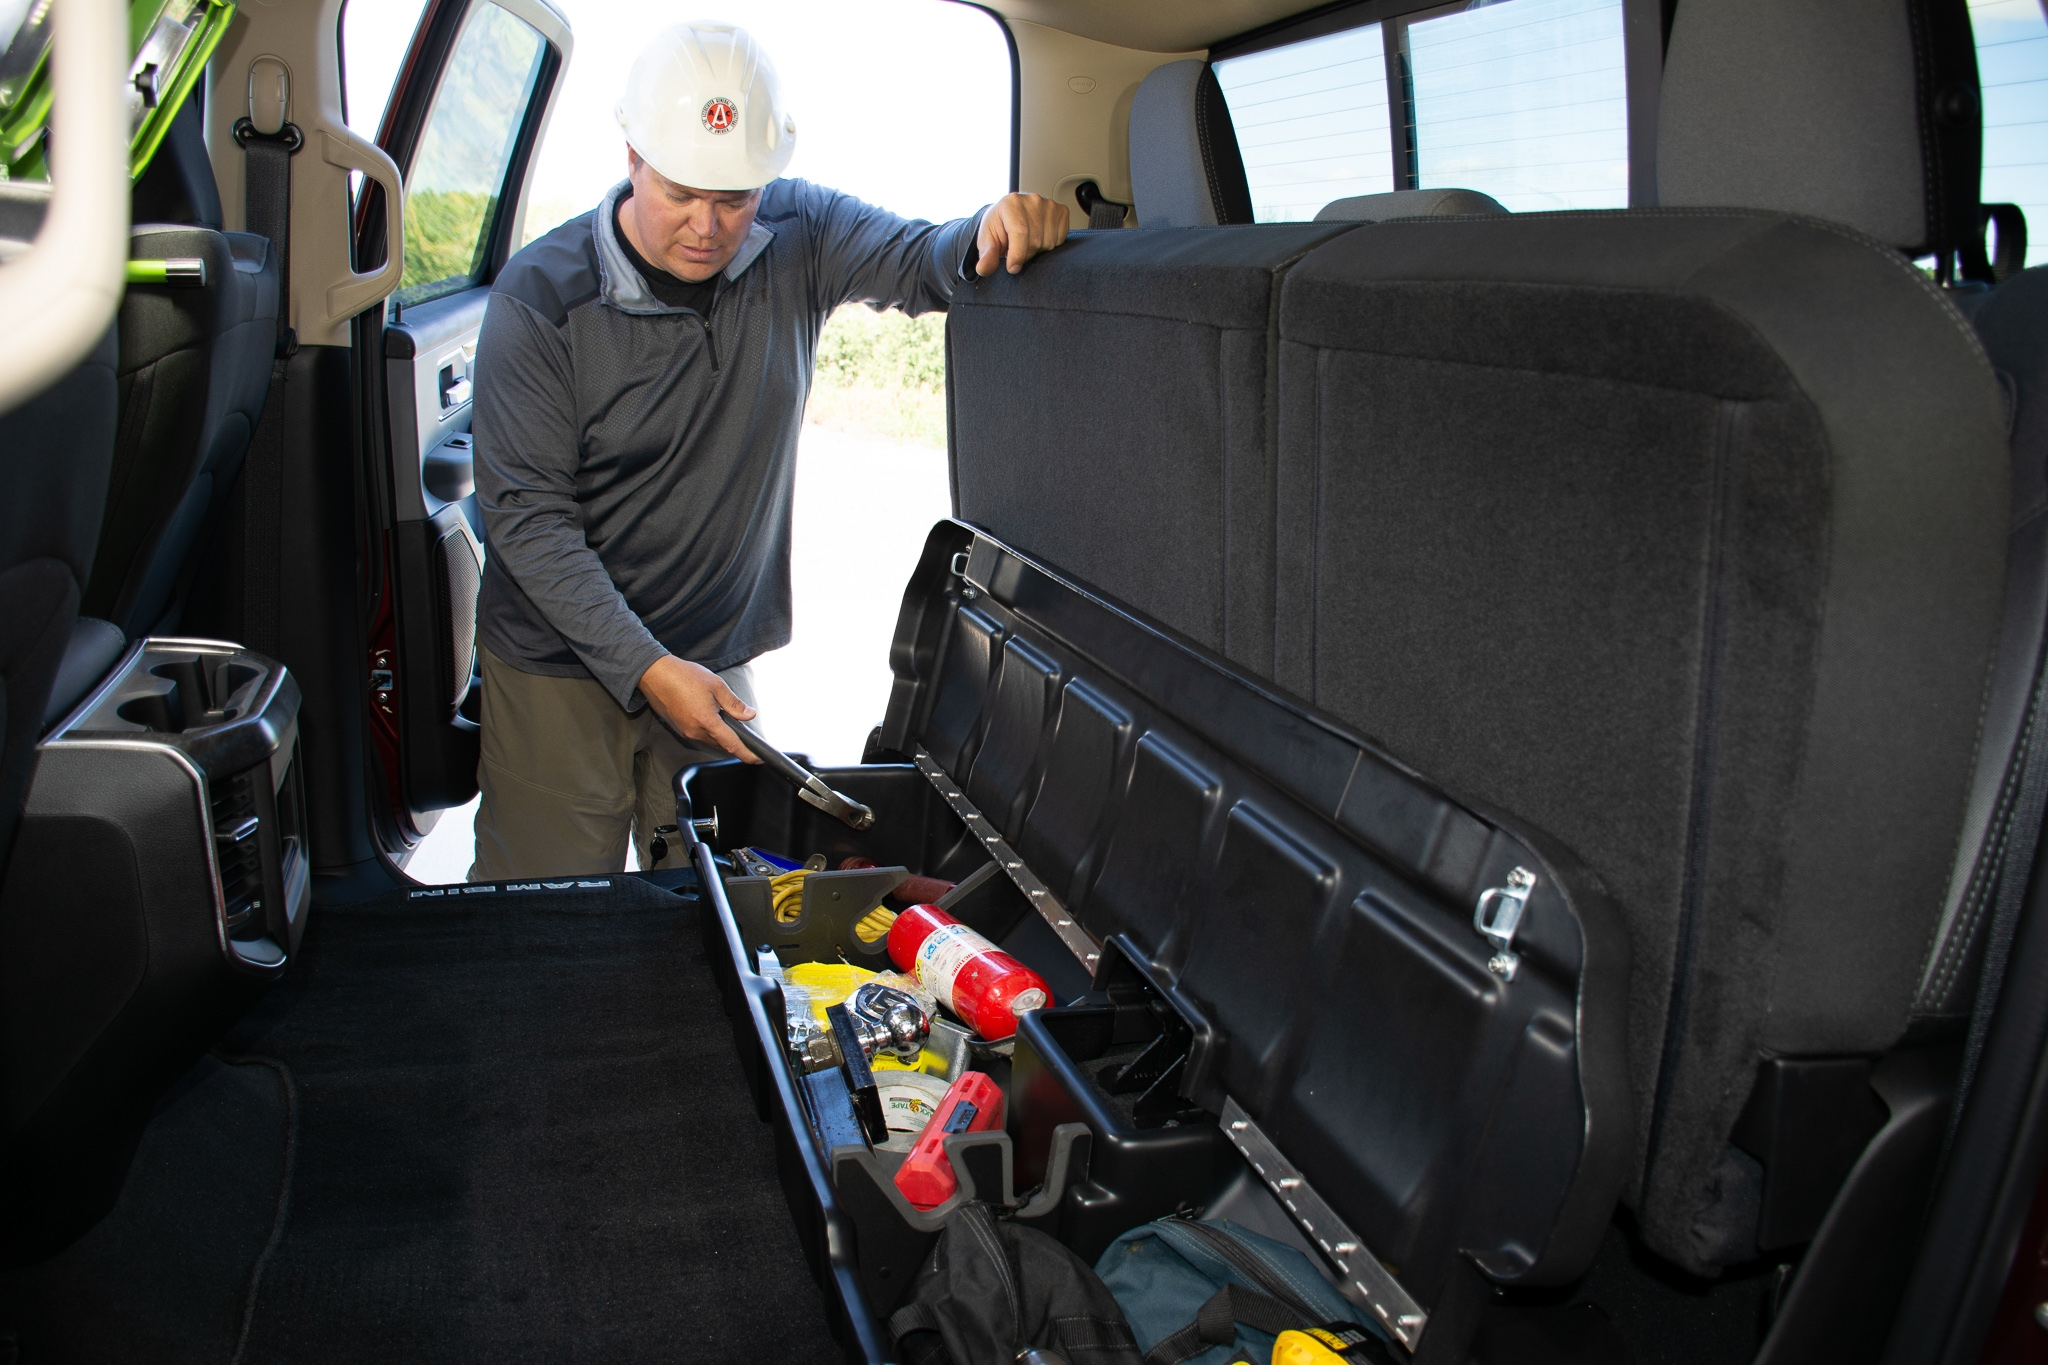 DU-HA Underseat Storage - Store your gear and valuables safely out of sight under your back seat.